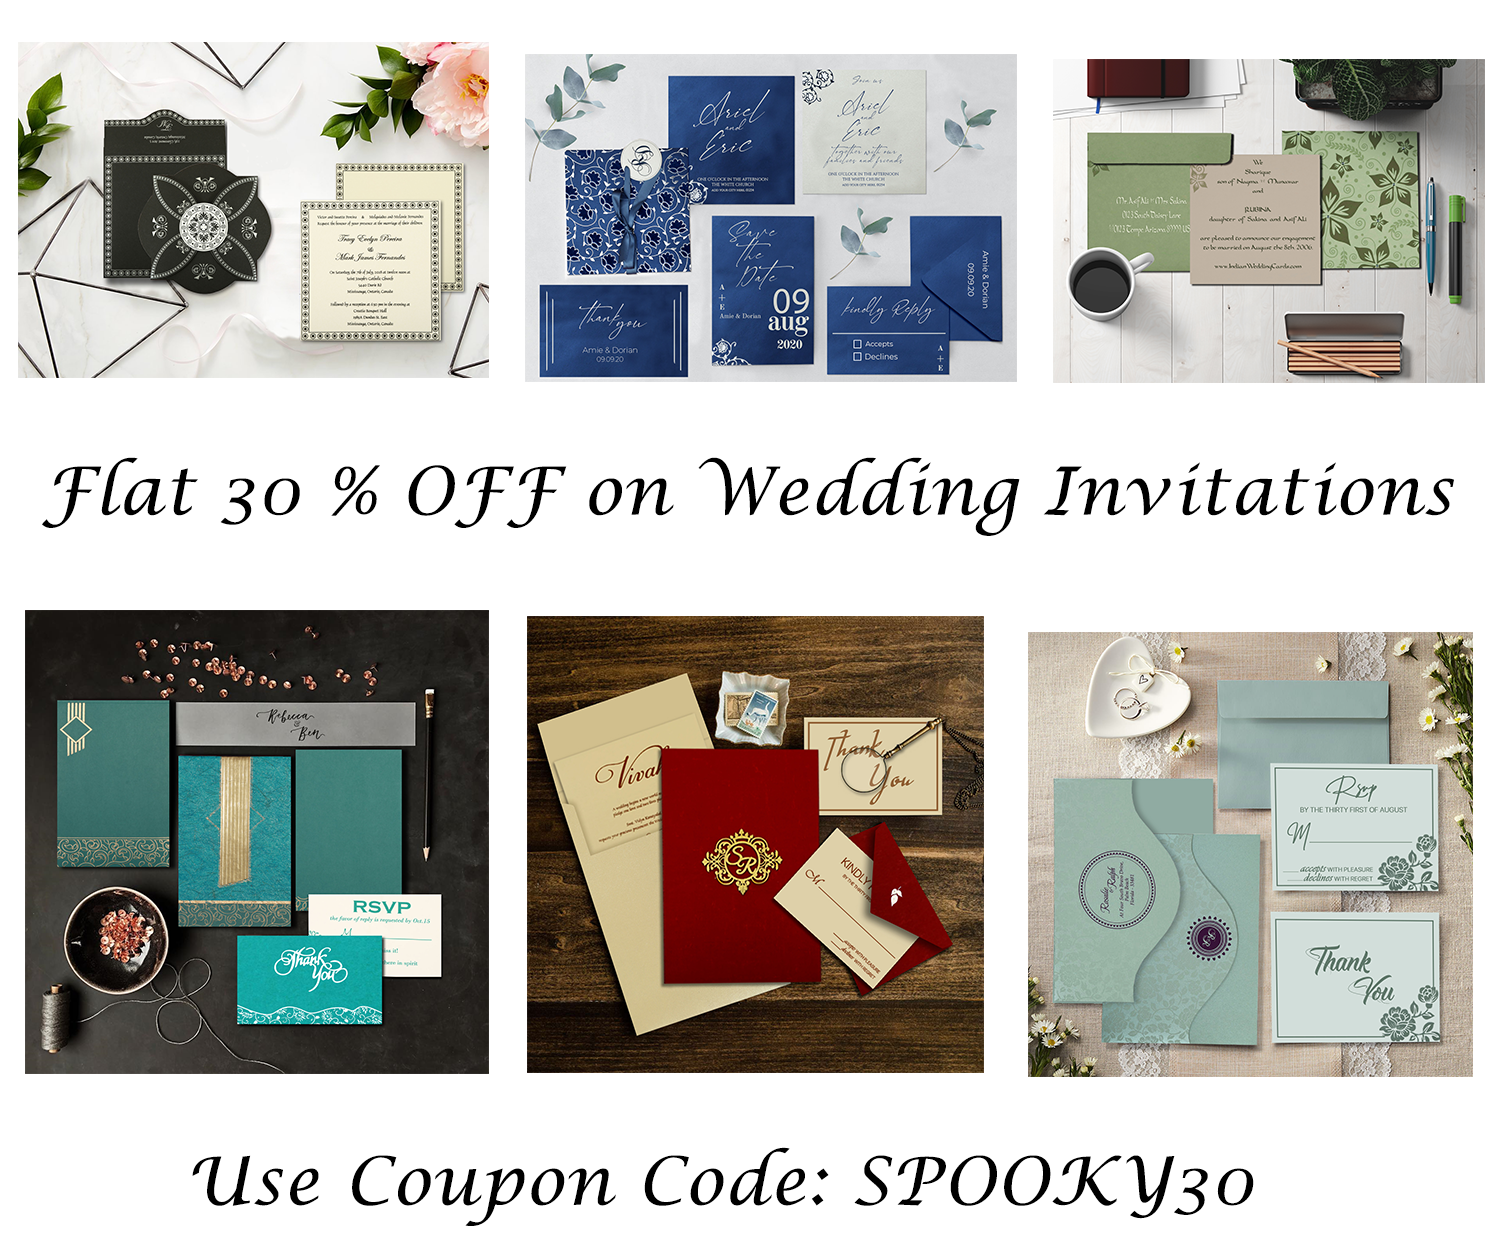 Purchase any invitation from our collection and save 30% ❤️on invitations. Use Code: SPOOKY30💥 #weddingivnitationsoffers #weddinginvitations #offers #invitationoffers #weddingdeals #weddingcards #weddinginvites #wedding #invitationsale